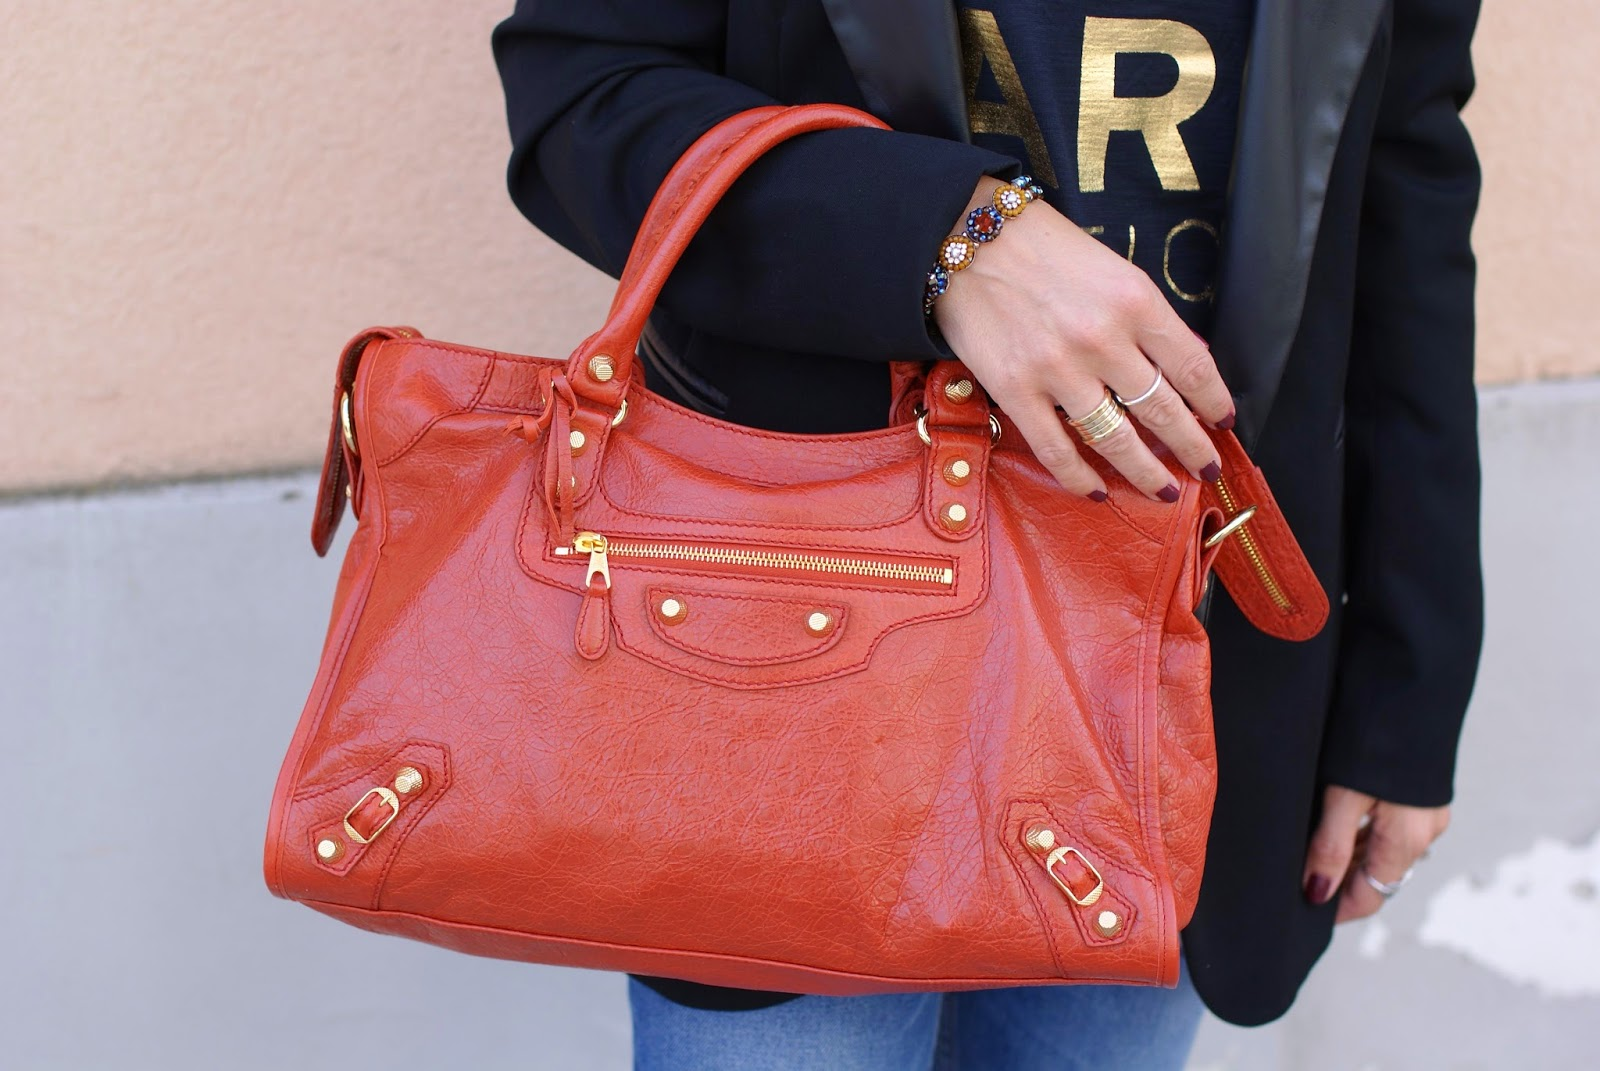 Balenciaga City rouge ambre, balenciaga golden giant 21, Fashion and Cookies, fashion blogger